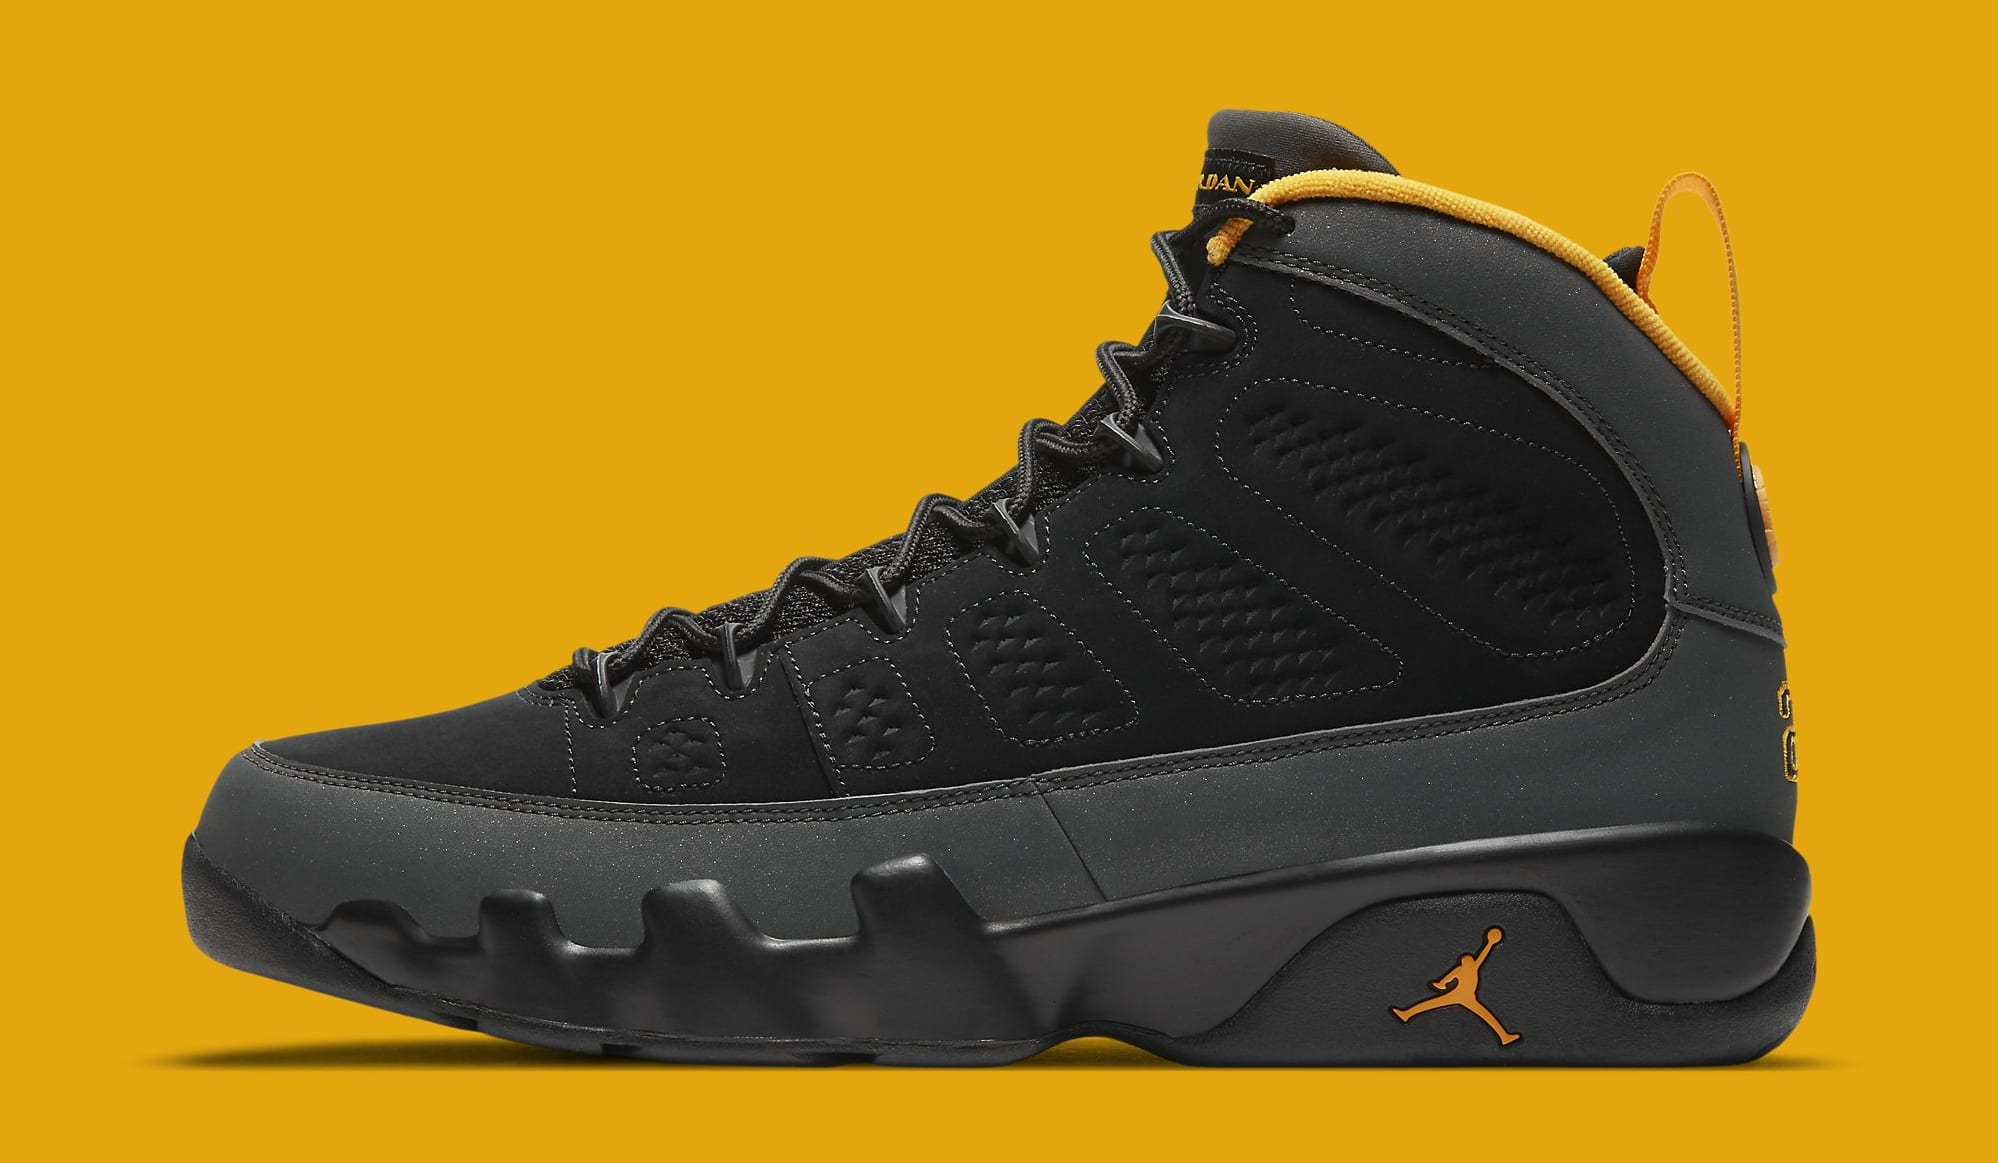 Air Jordan 9 Retro 'University Gold' CT8019-070 Lateral